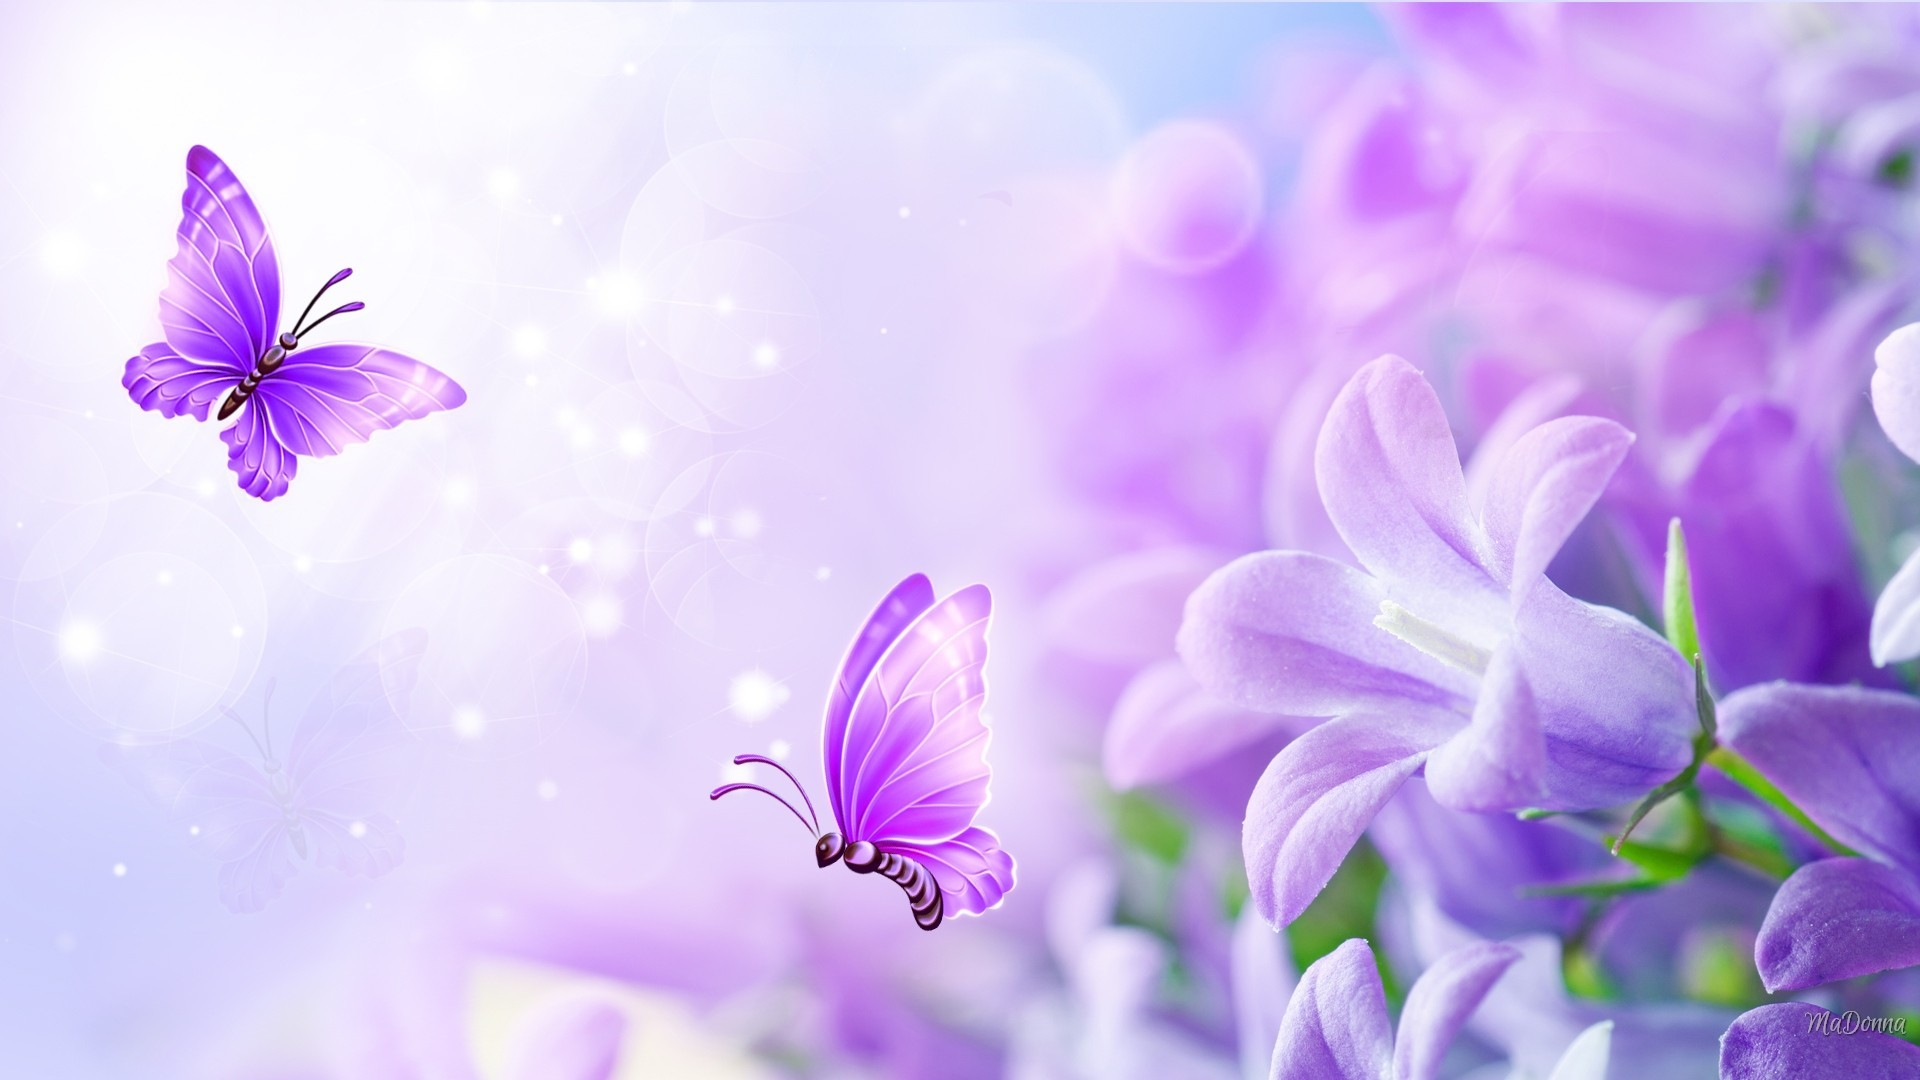 Res: 1920x1080, Bliss Soft Butterflies Pastel Summer Flowers Lilac Fragrant Lavender Floral  Flower Wallpaper Black And White